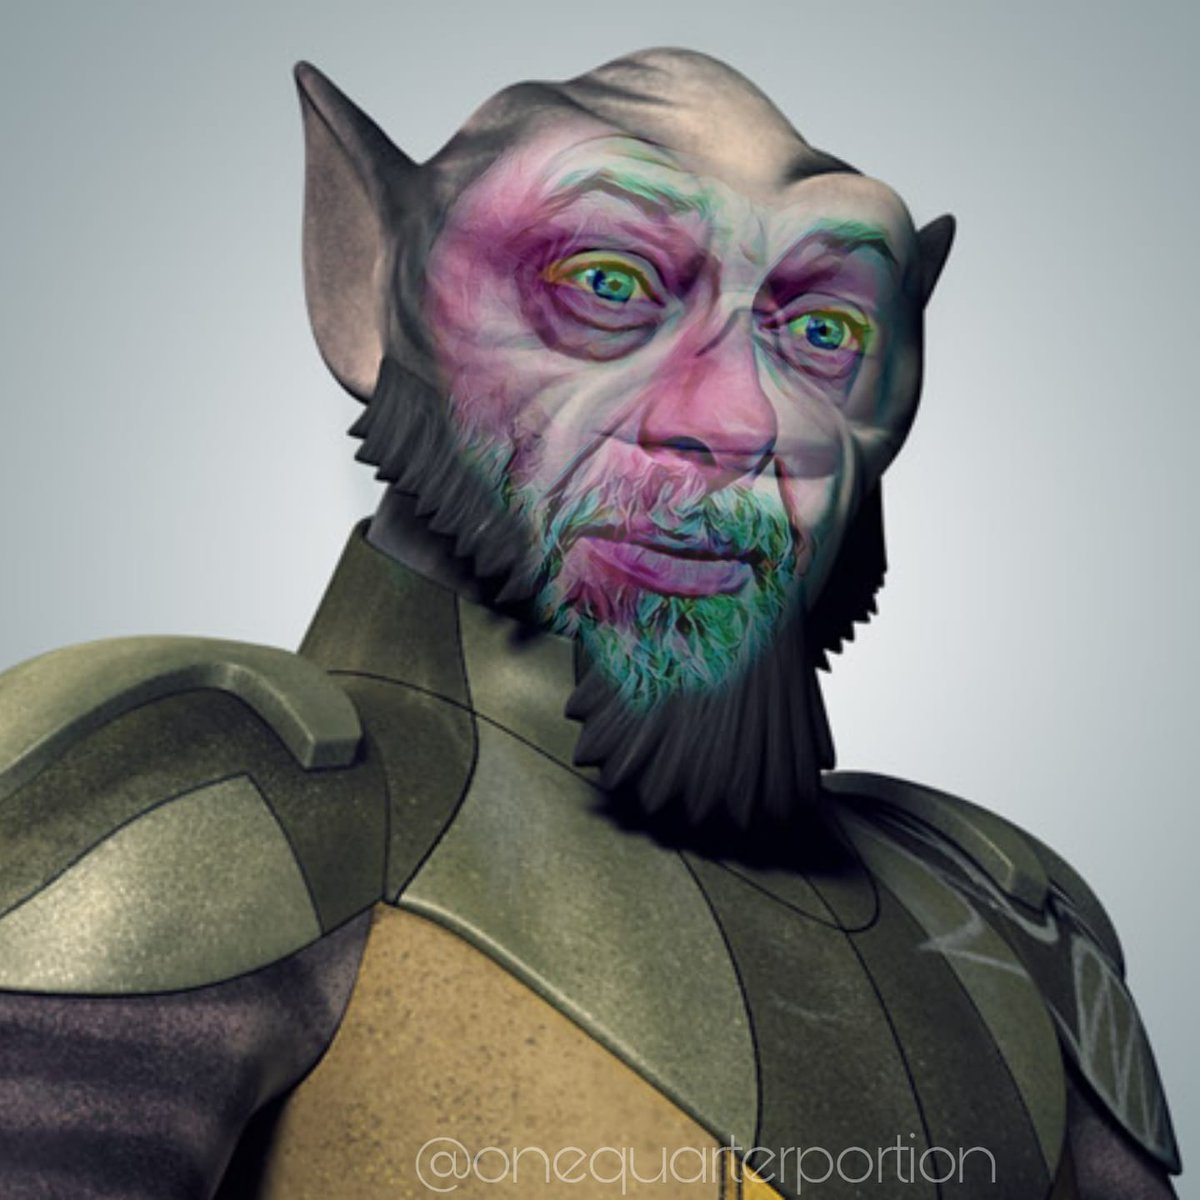 """""""Once you Serkis Zeb, you can't unsee.""""  #starwars #AndySerkis #Zeb #starwarsrebels #starwarsmemes #starwarsart #funnymemes #art #OneQuarterPortion https://t.co/61IV0yTCCd"""